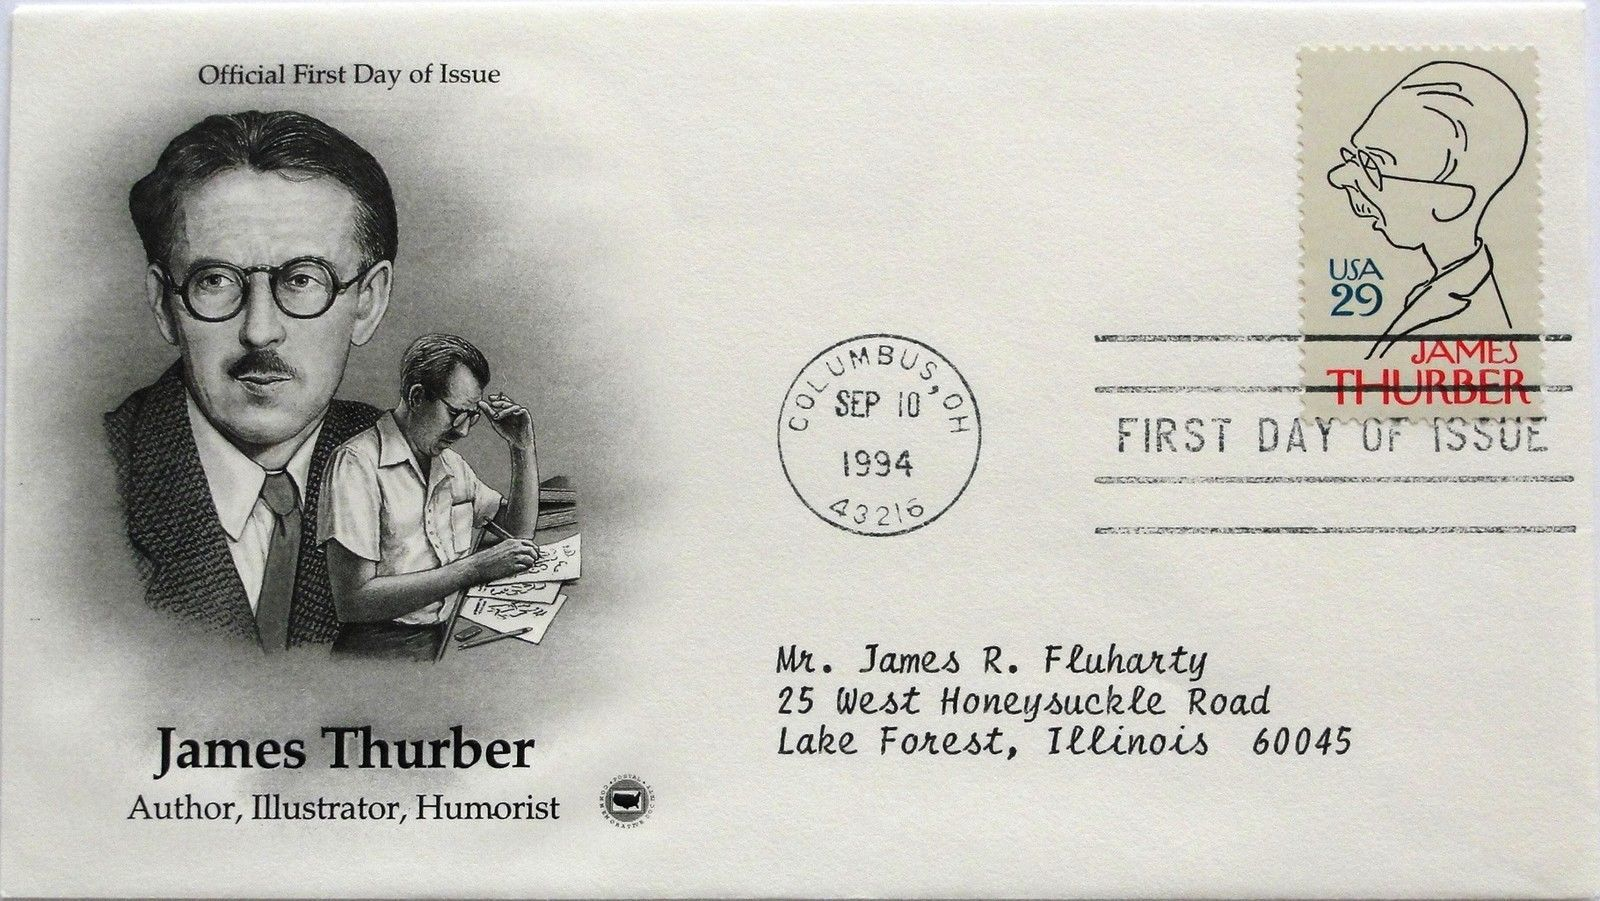 Sept. 10, 1994 First Day of Issue, PC Society Cover, James Thurber #33